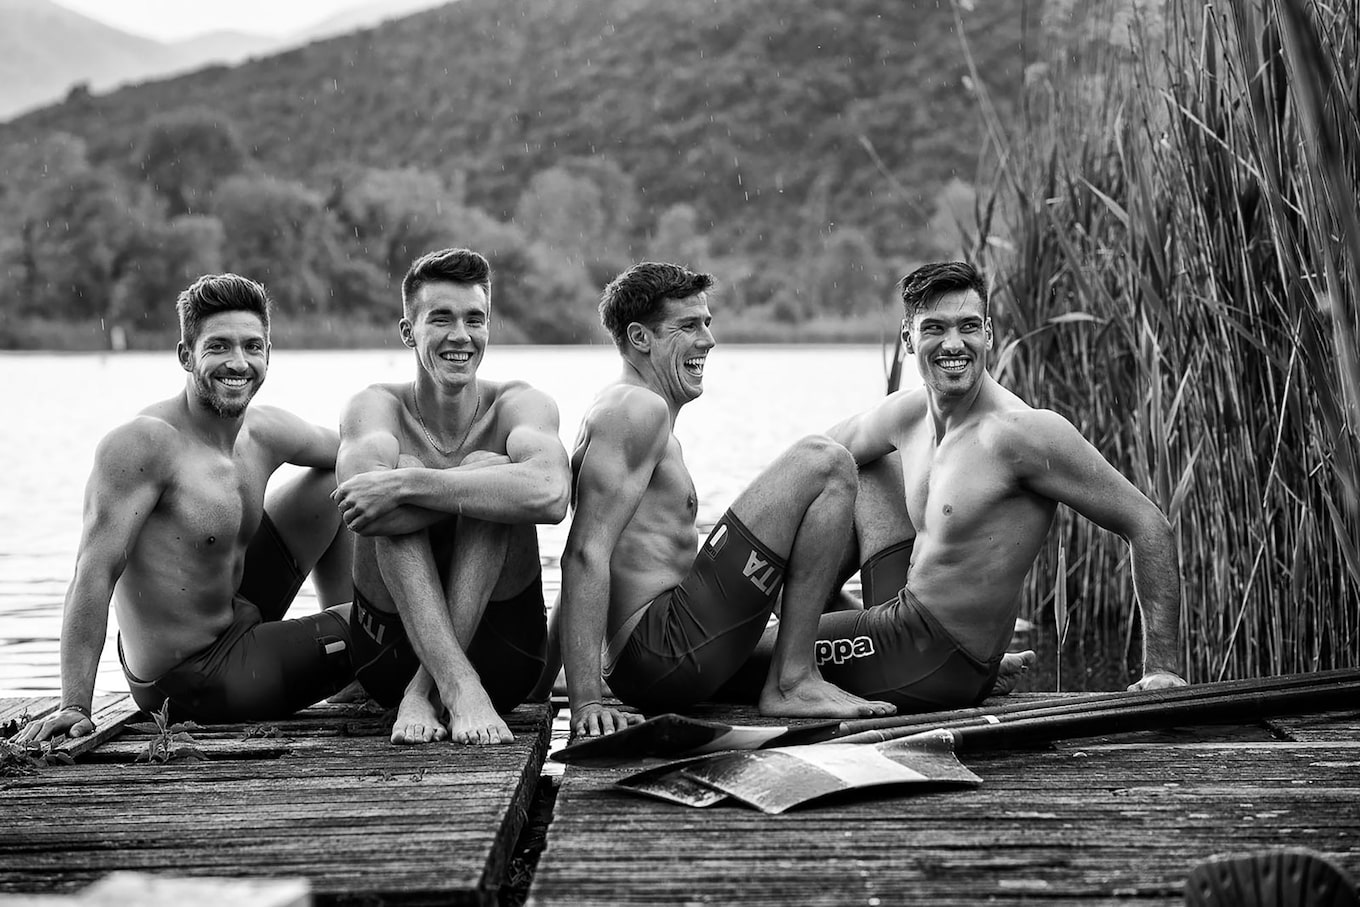 maki-galimberti-sony-alpha-7RII-male-swimming-team-pose-on-jetty-by-lake